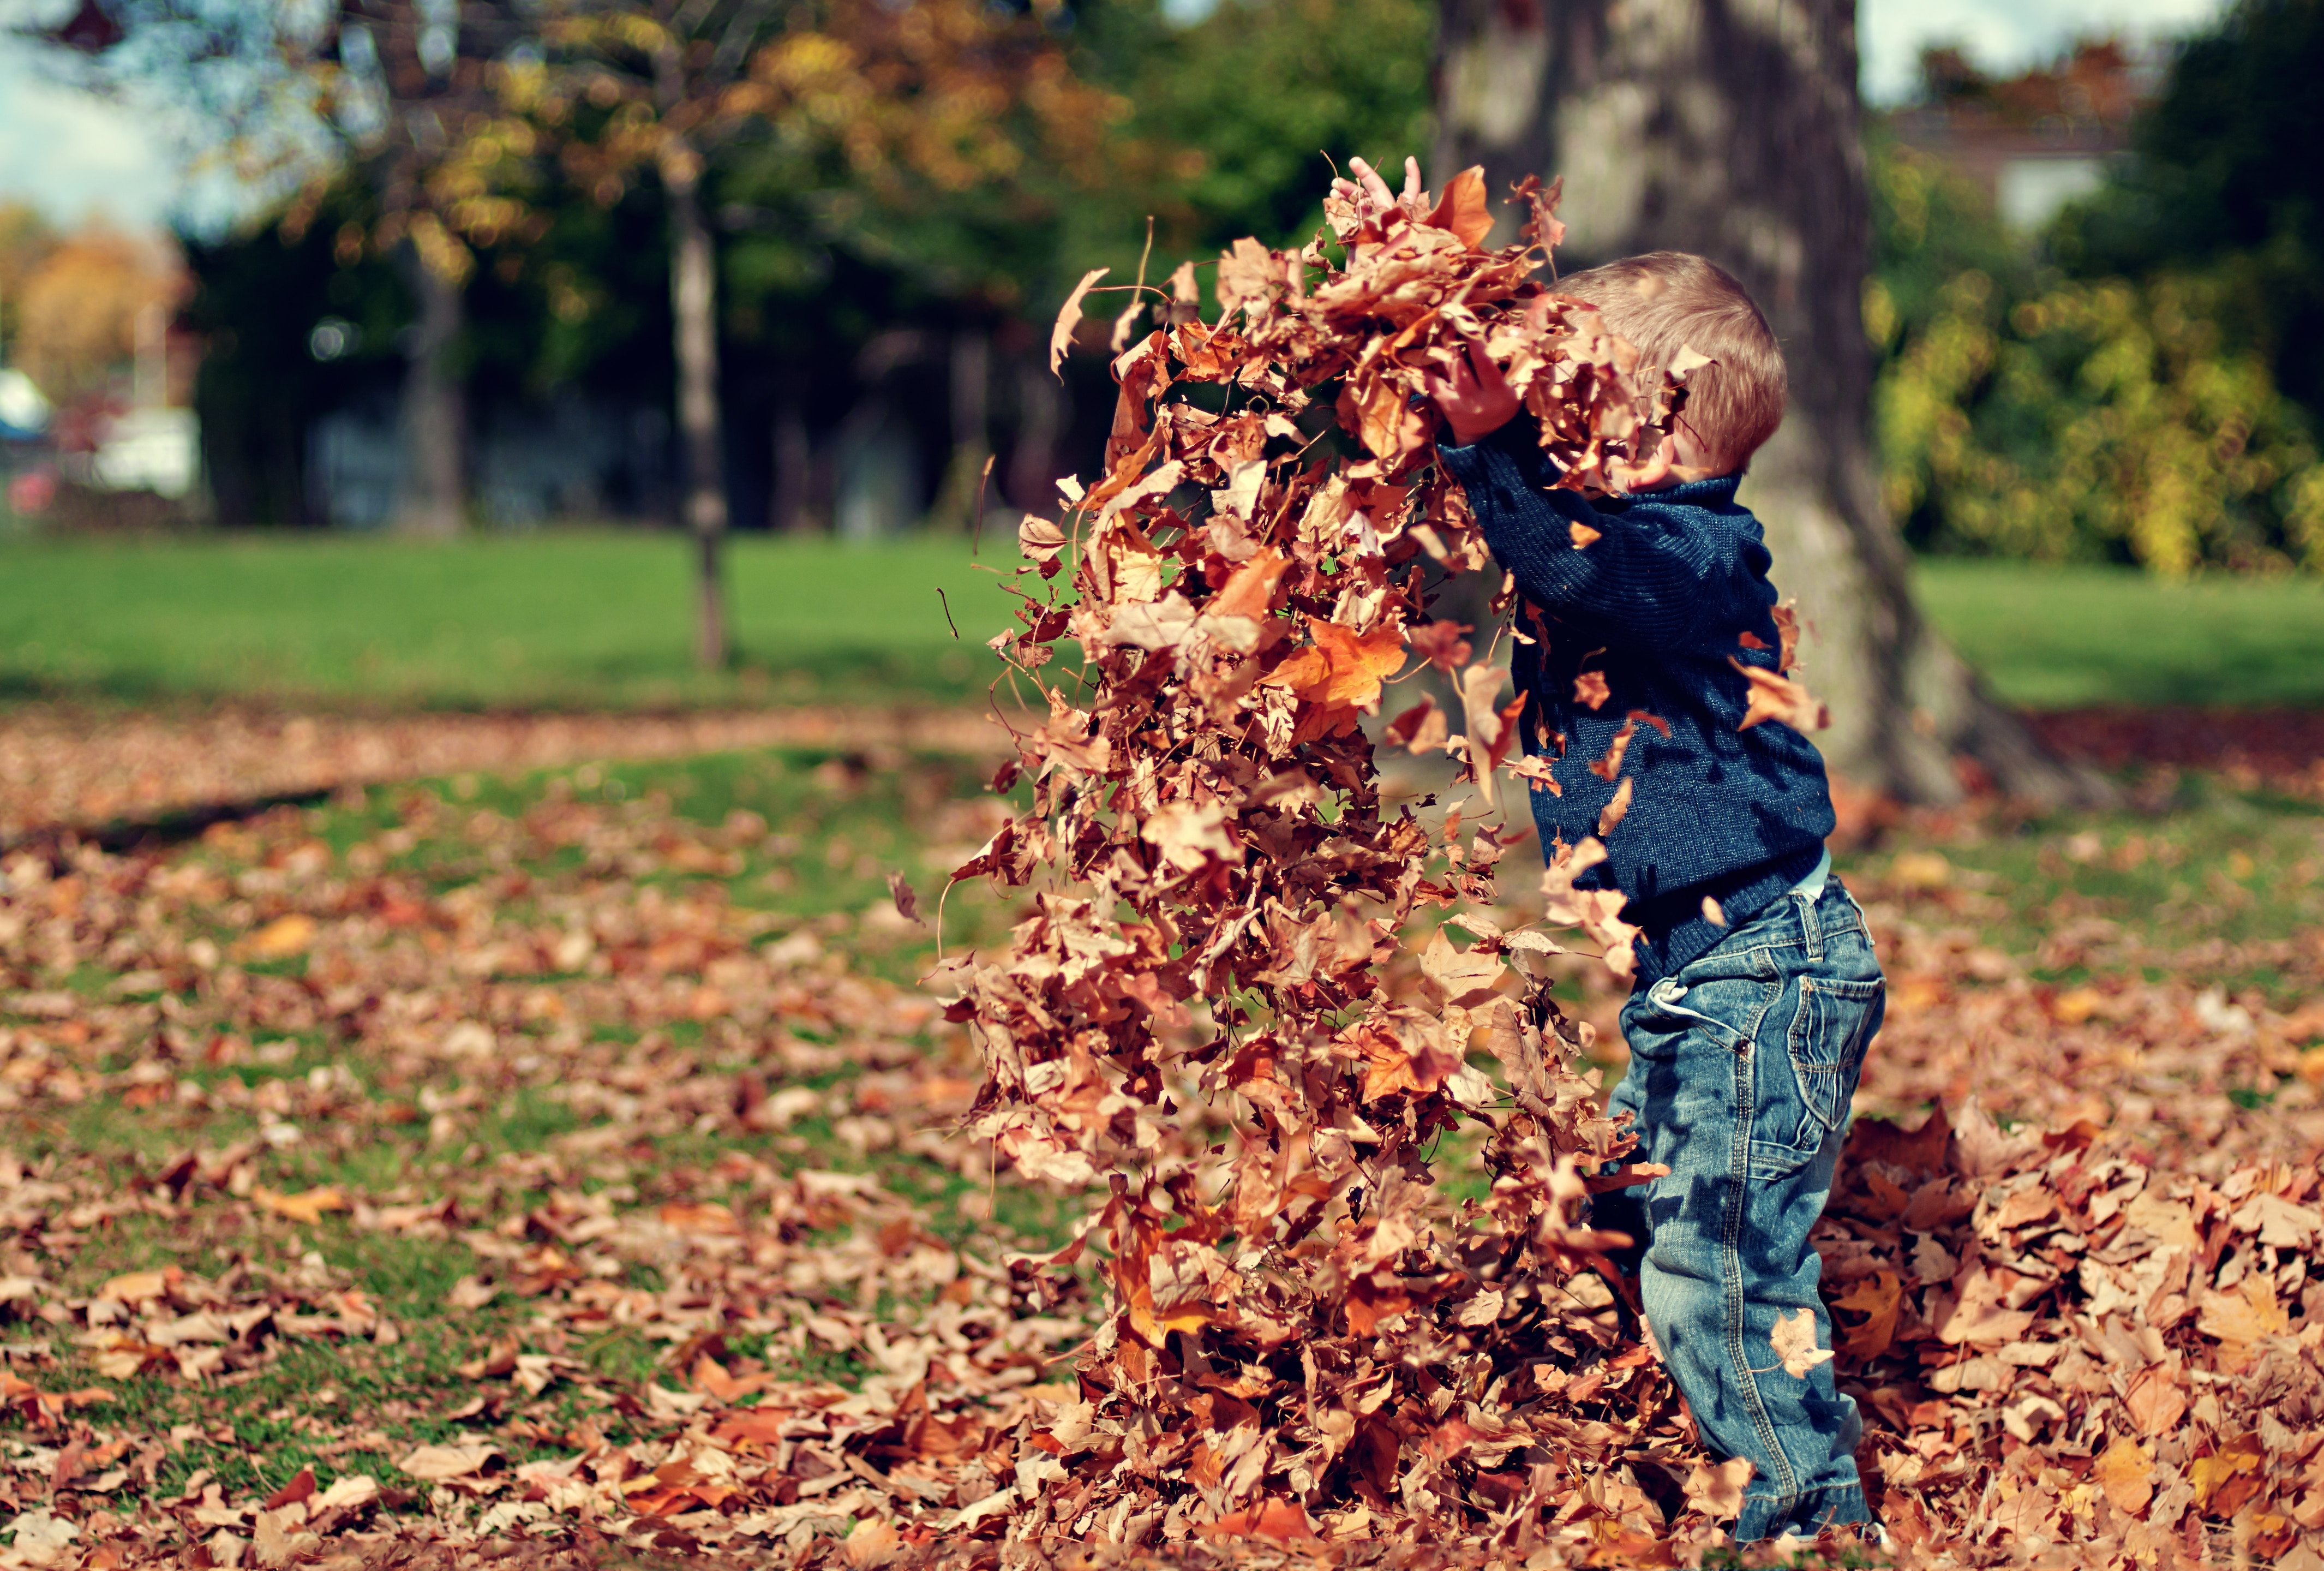 nz-ece-child-in-leaves